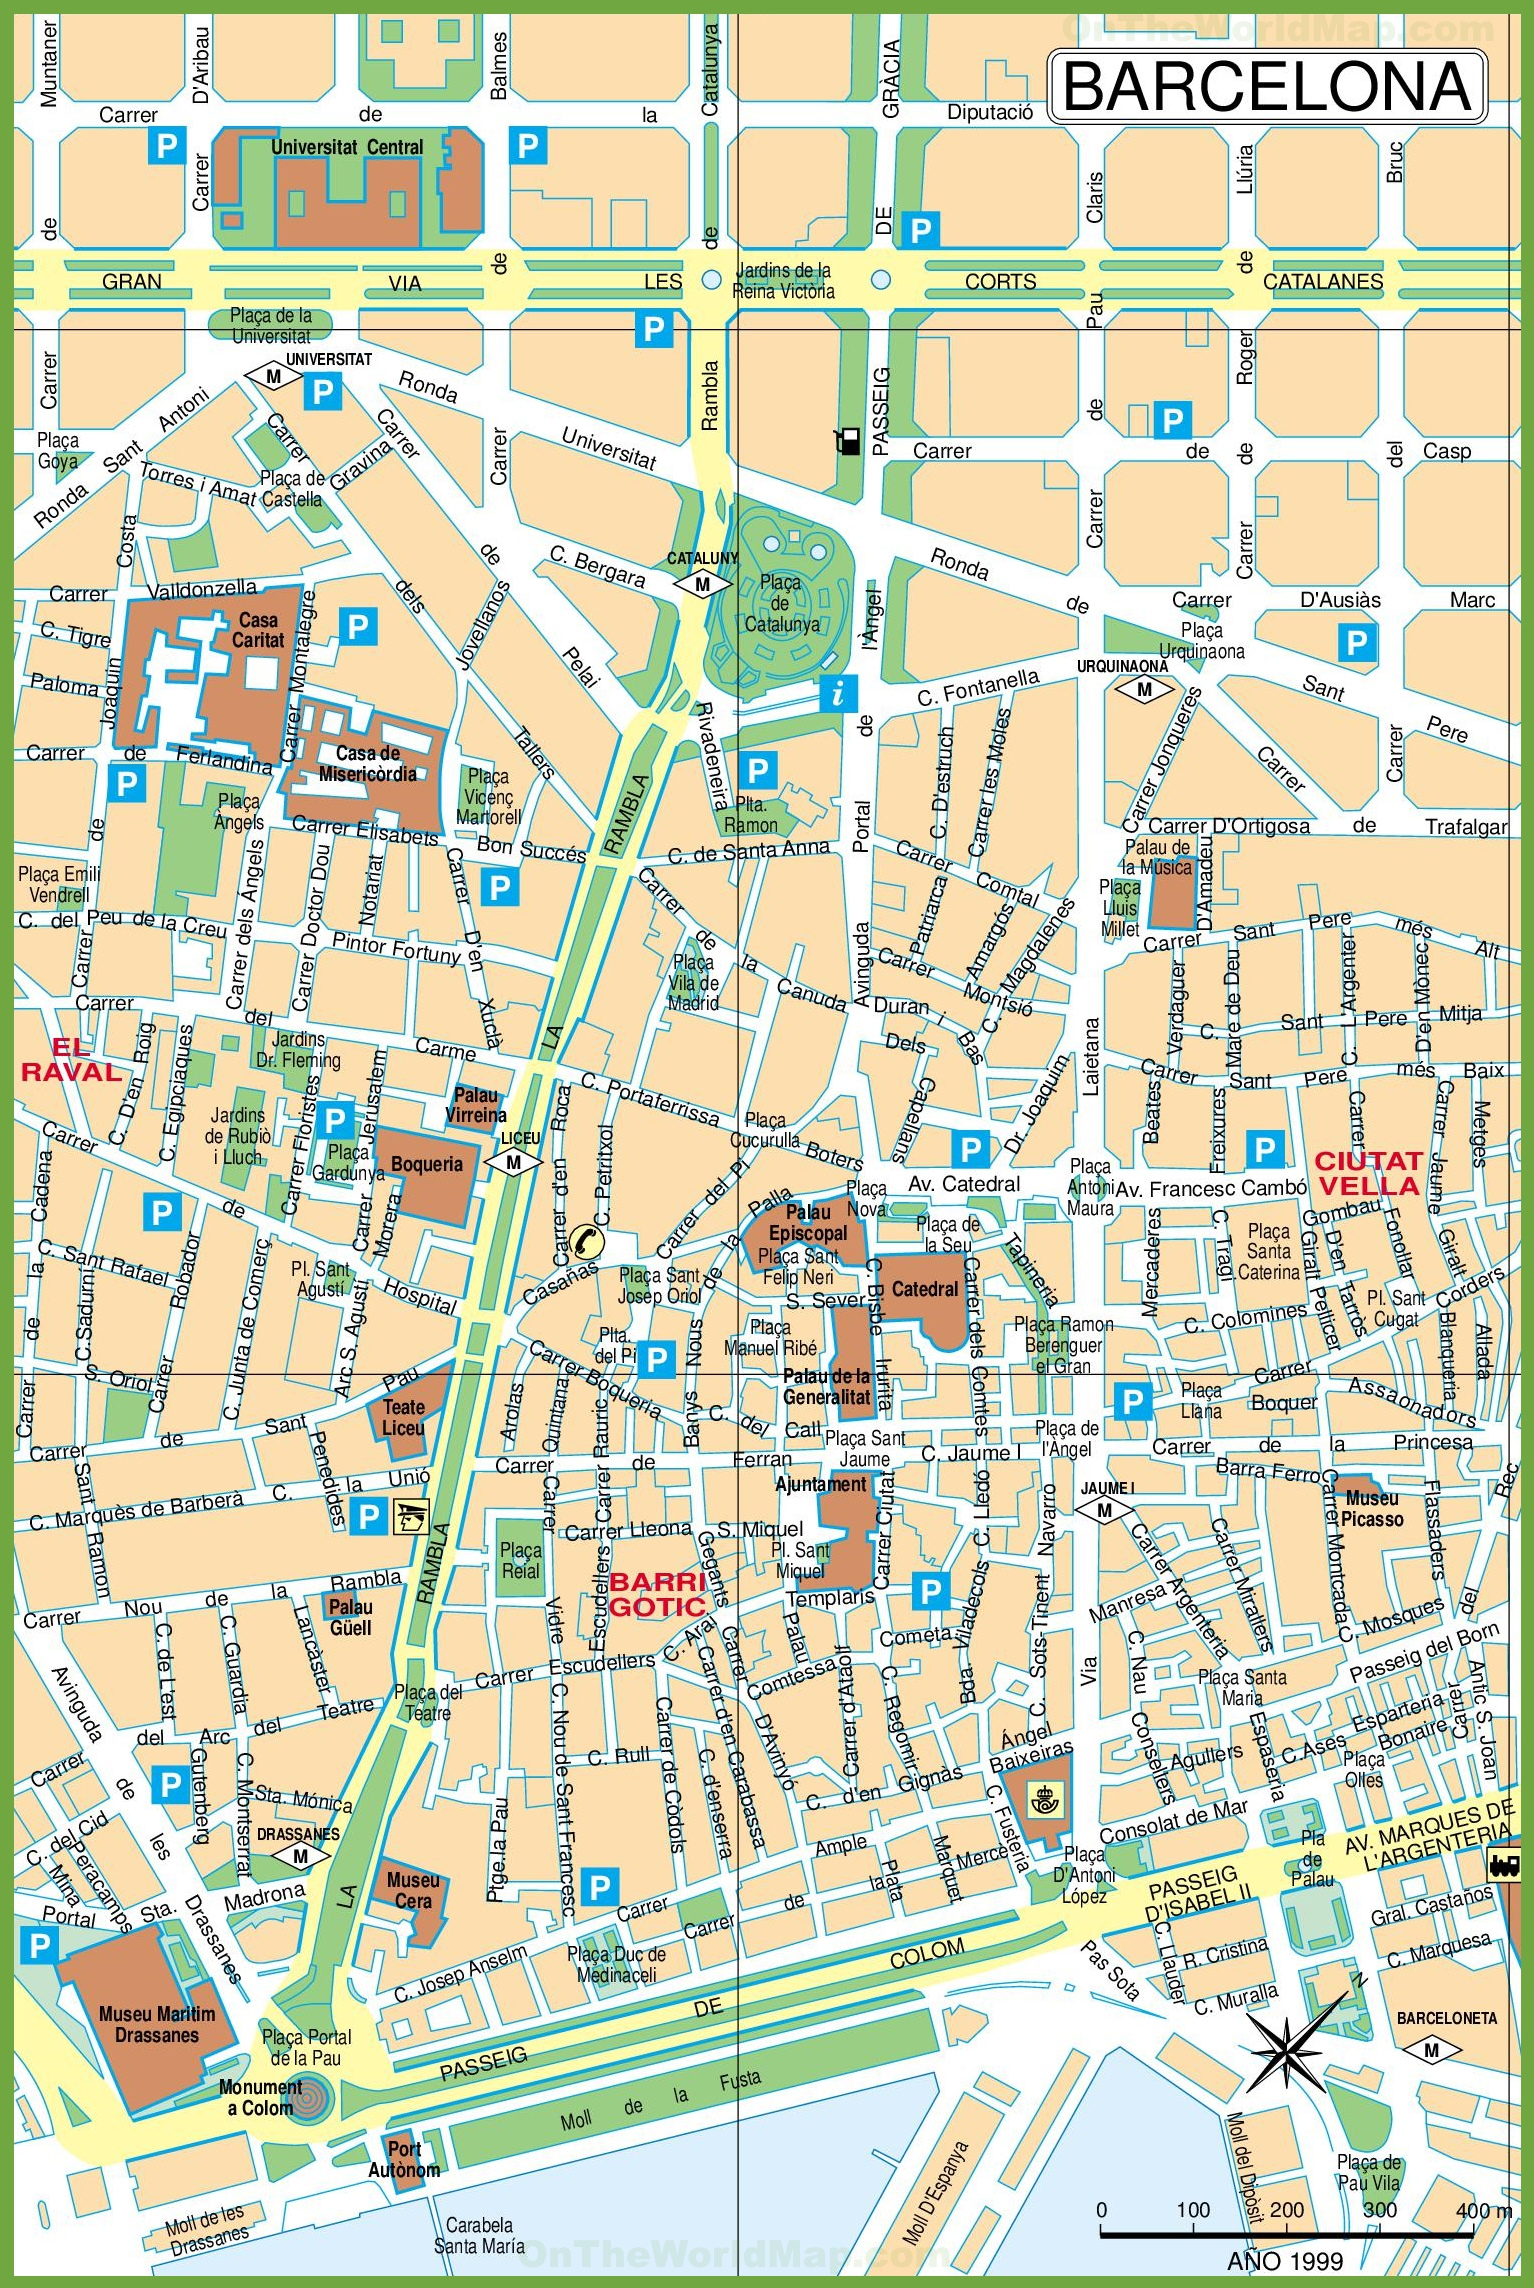 barcelona city center map -